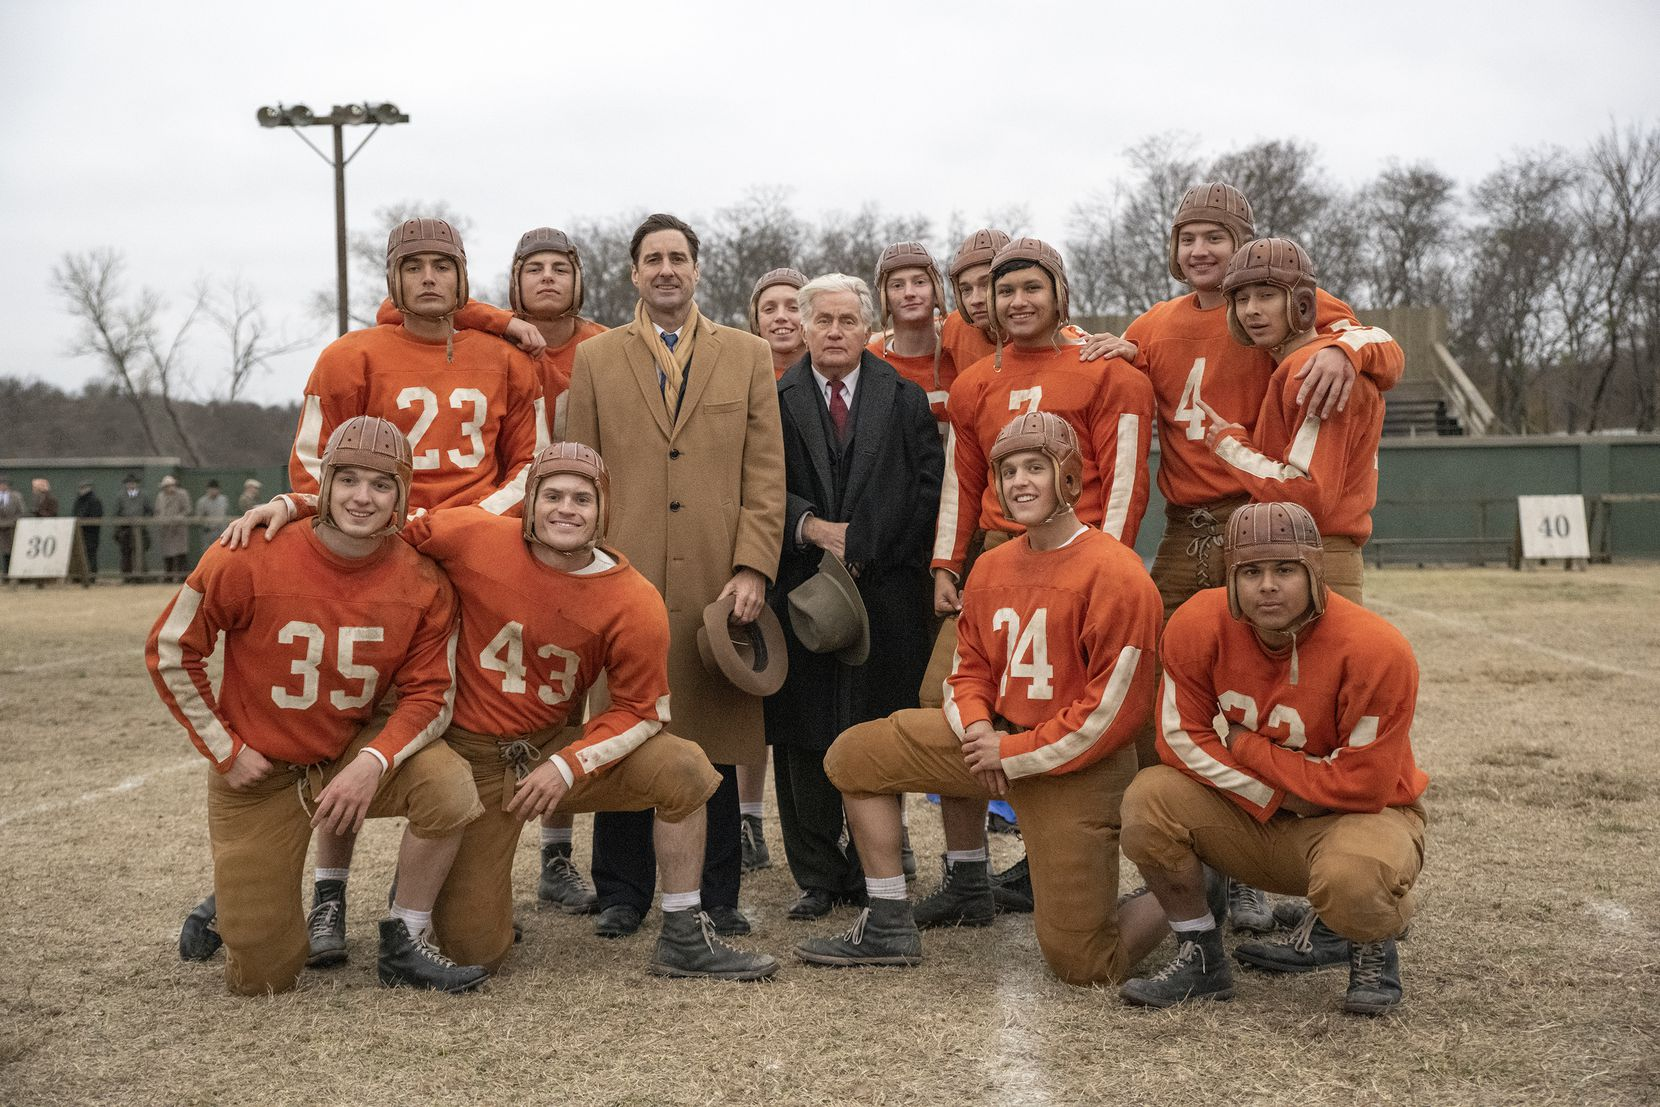 """A photo from the new movie """"12 Mighty Orphans."""" Left to Right: (Back): Preston Porter, Woodrow Luttrell, Sampley Barinaga, Jacob Lofland (Middle): Levi Dylan, Luke Wilson, Martin Sheen, Manuel Tapia, Austin Shook, Michael Gohlke (Front): Slade Monroe, Jake Austin Walker, Bailey Roberts and Tyler Silva."""